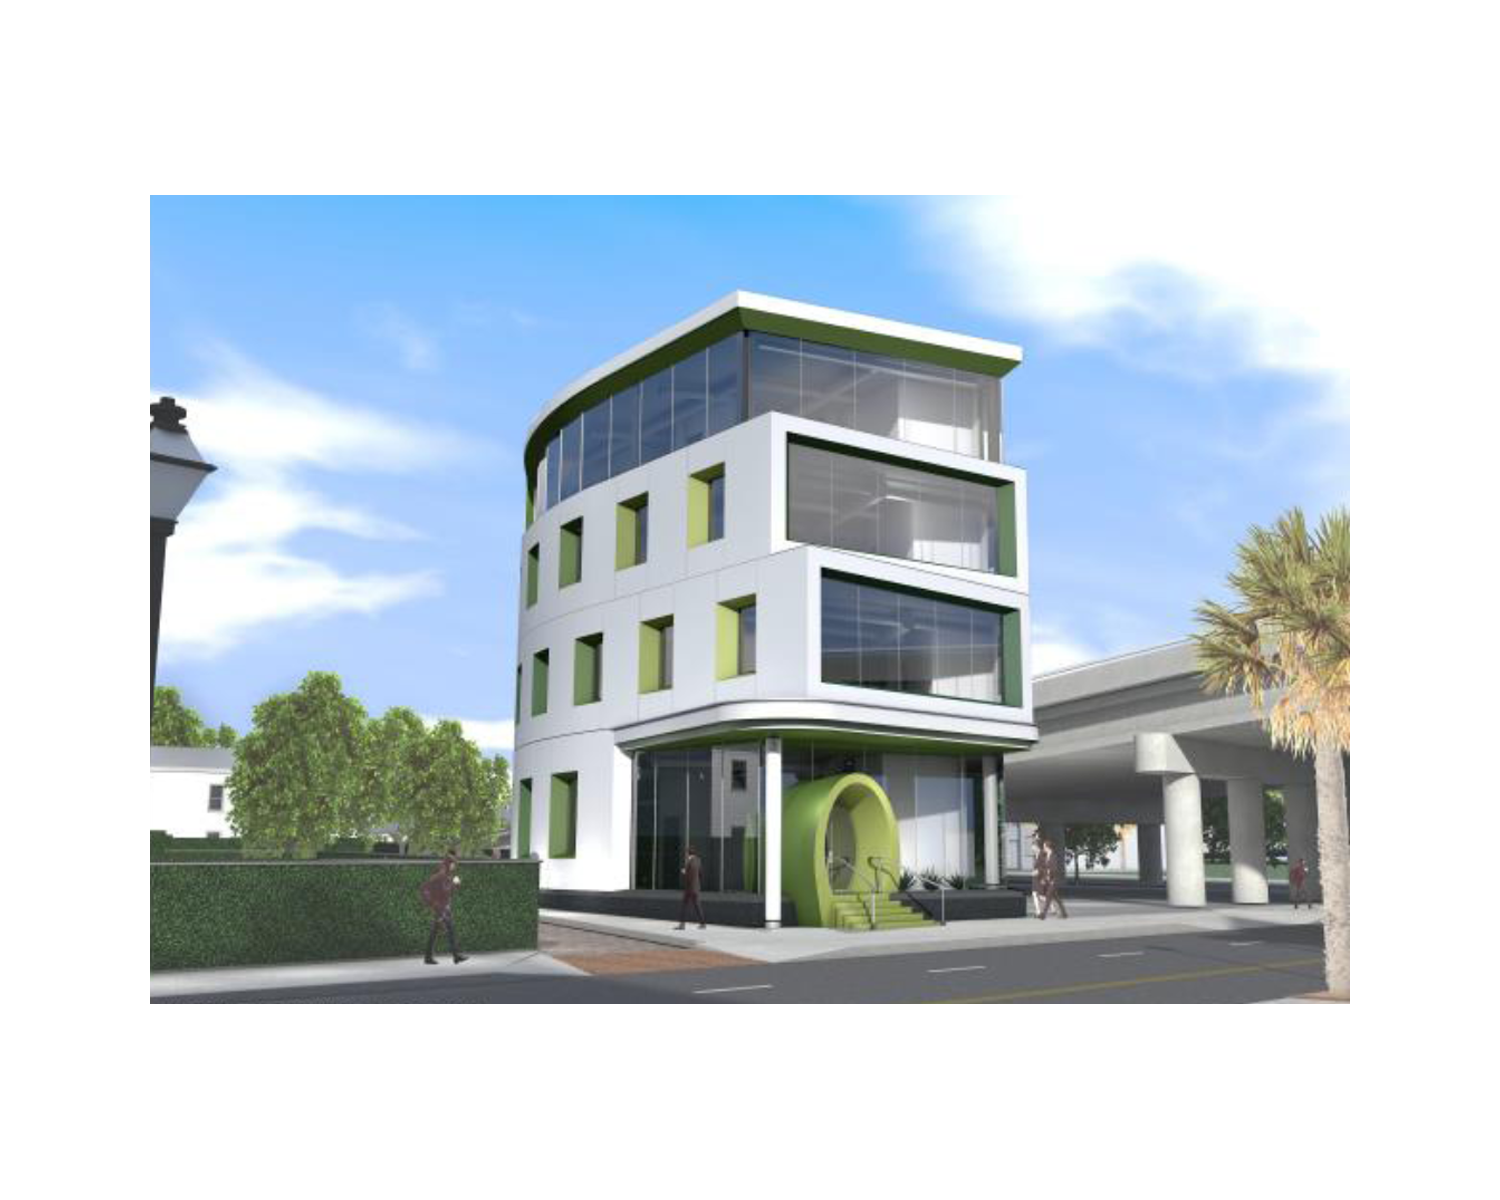 Rendering of the new office building at 663 King Street by Neil Stevenson Architects that was recently approved at the City of Charleston Board of Architectural Review.  Rendering courtesy of  City of Charleston Board of Architectural Review Website .